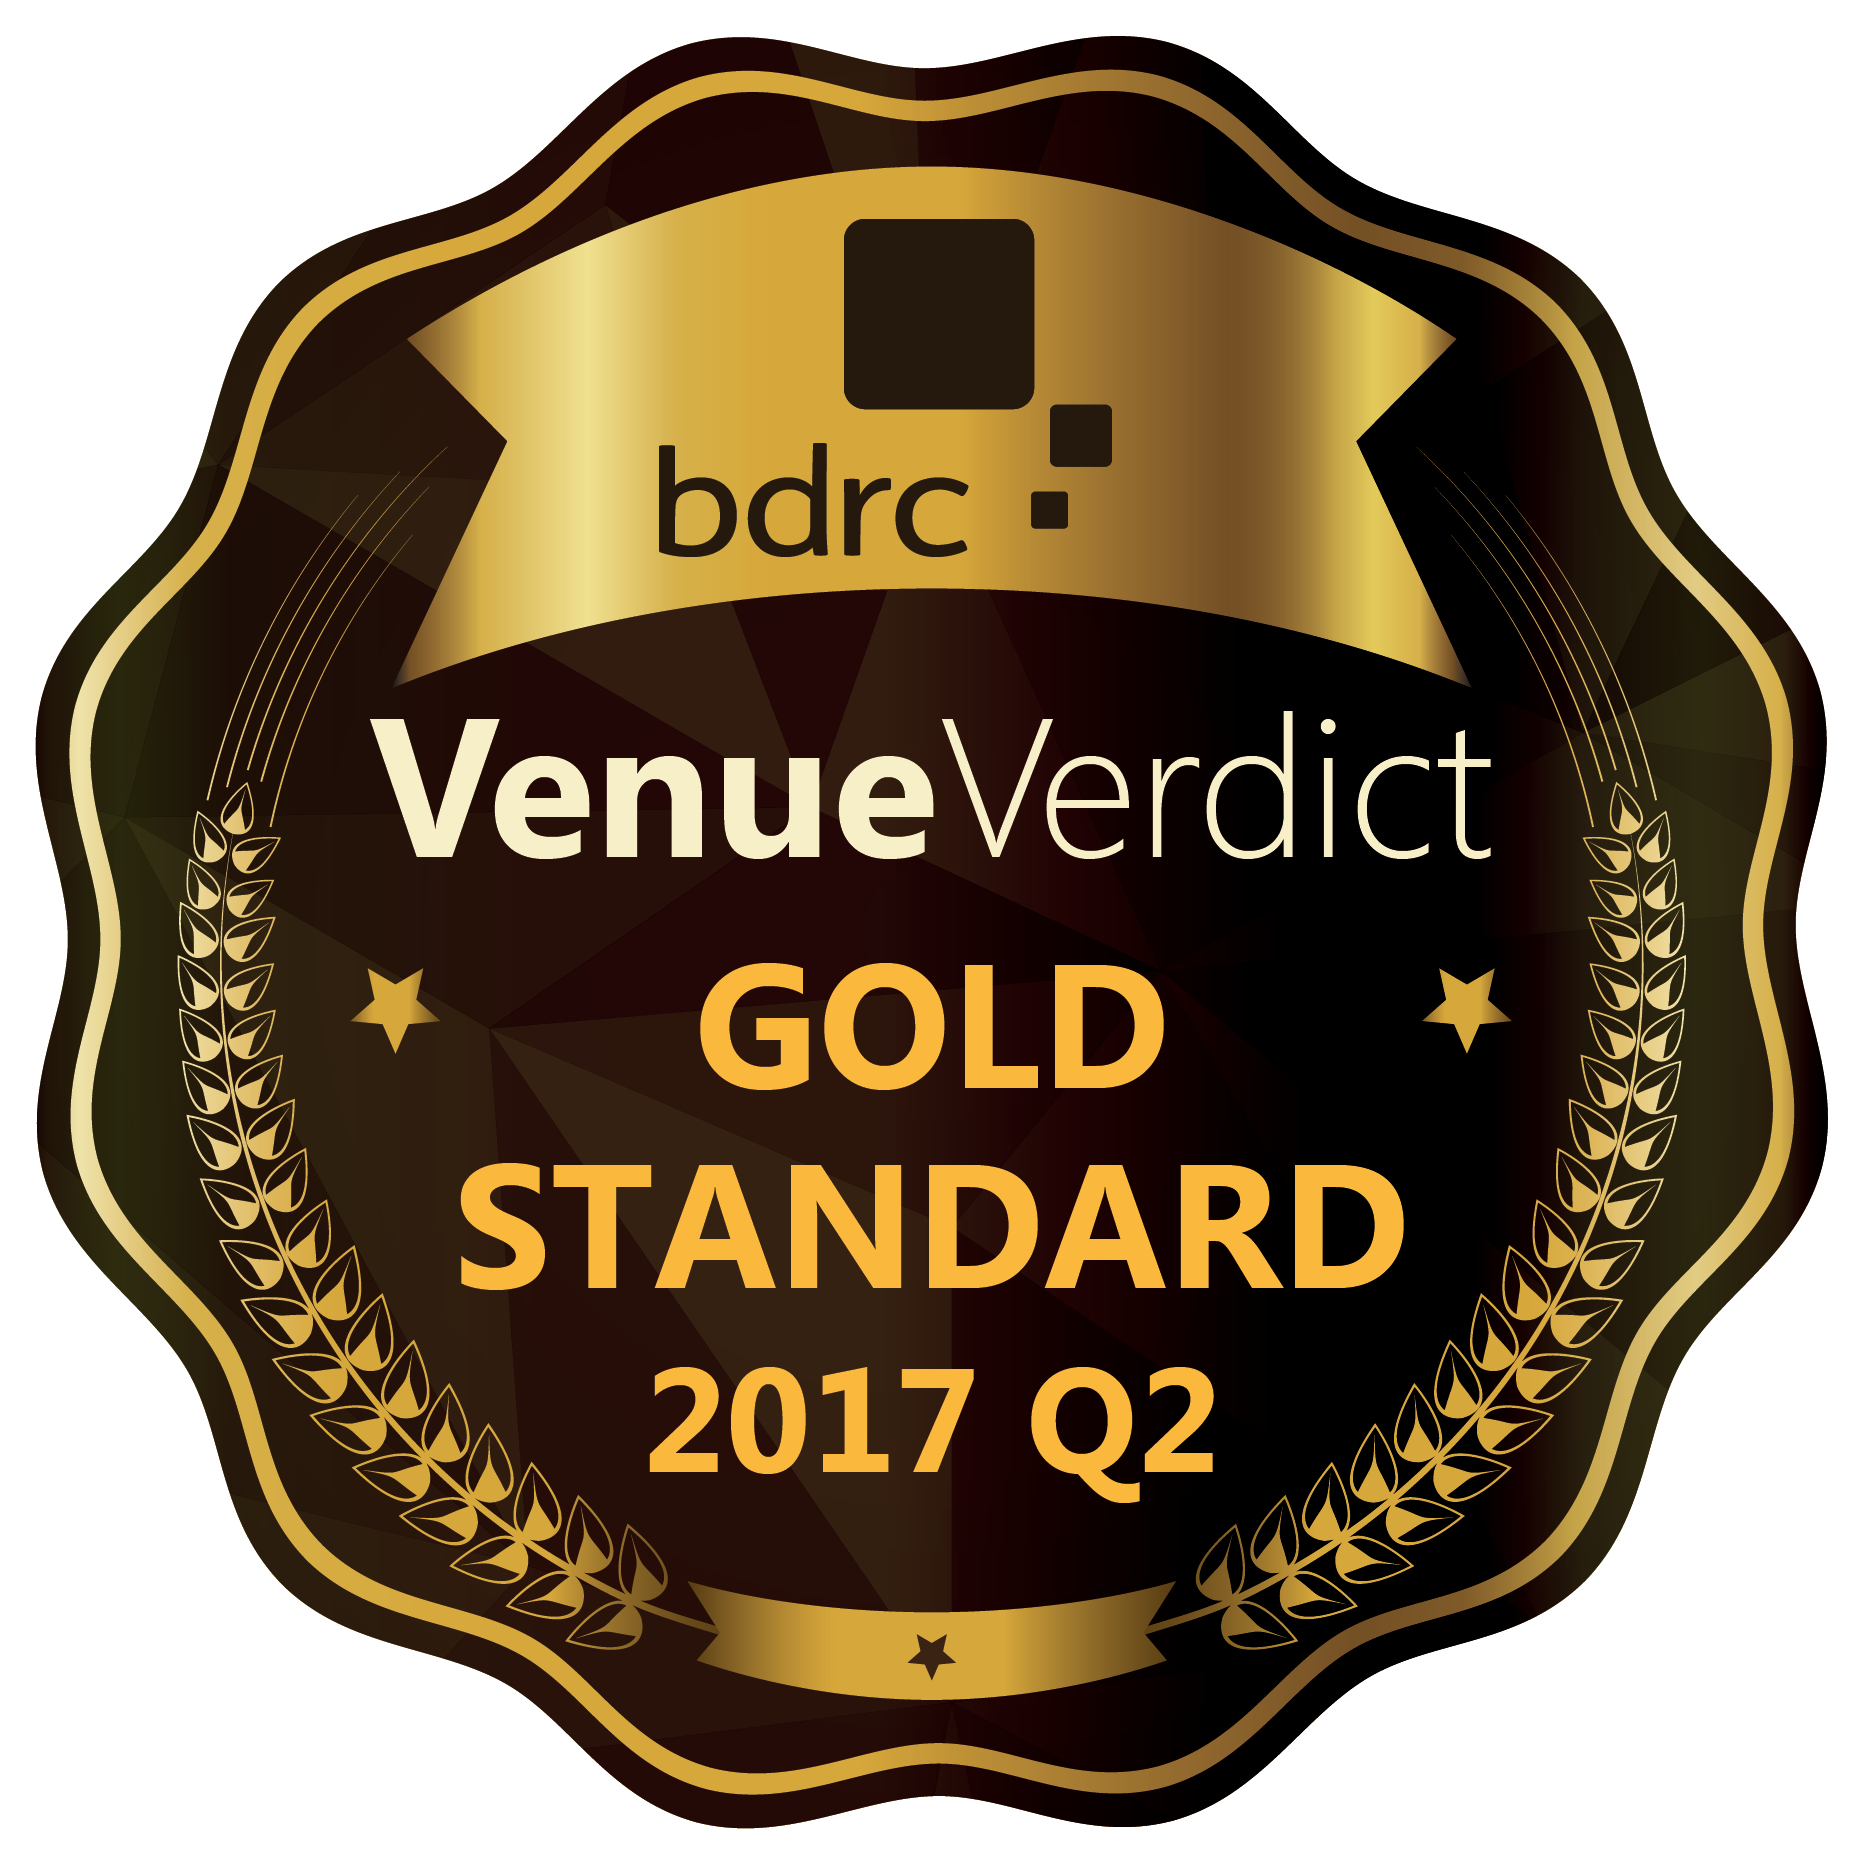 Venue Verdict Gold Standard Logo